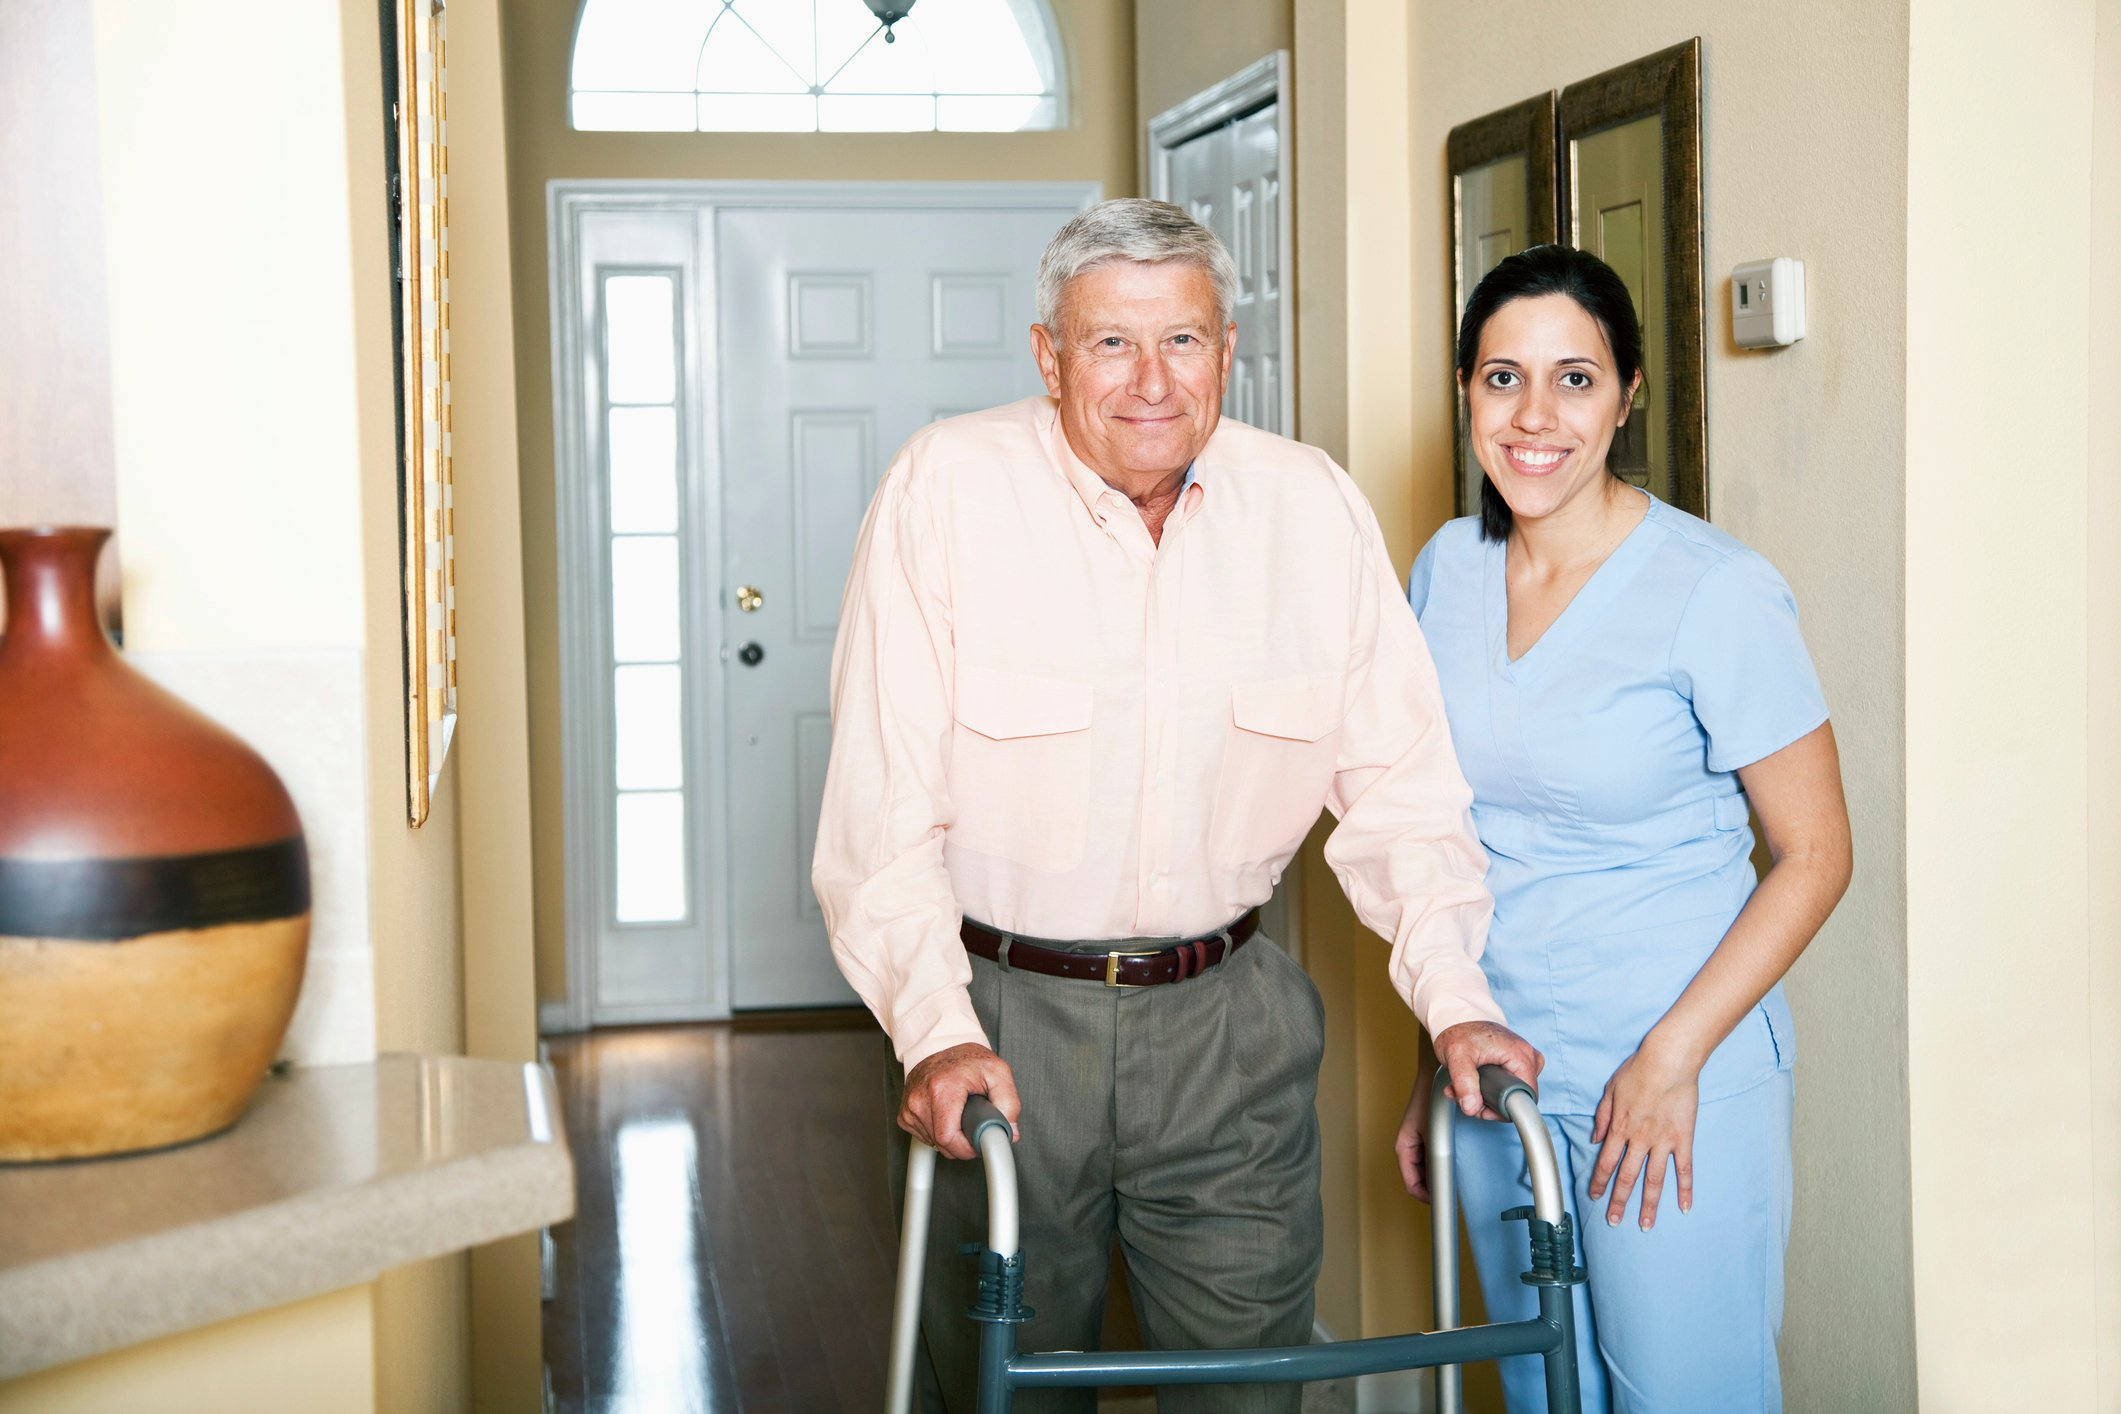 The Home Health & Home Care Process